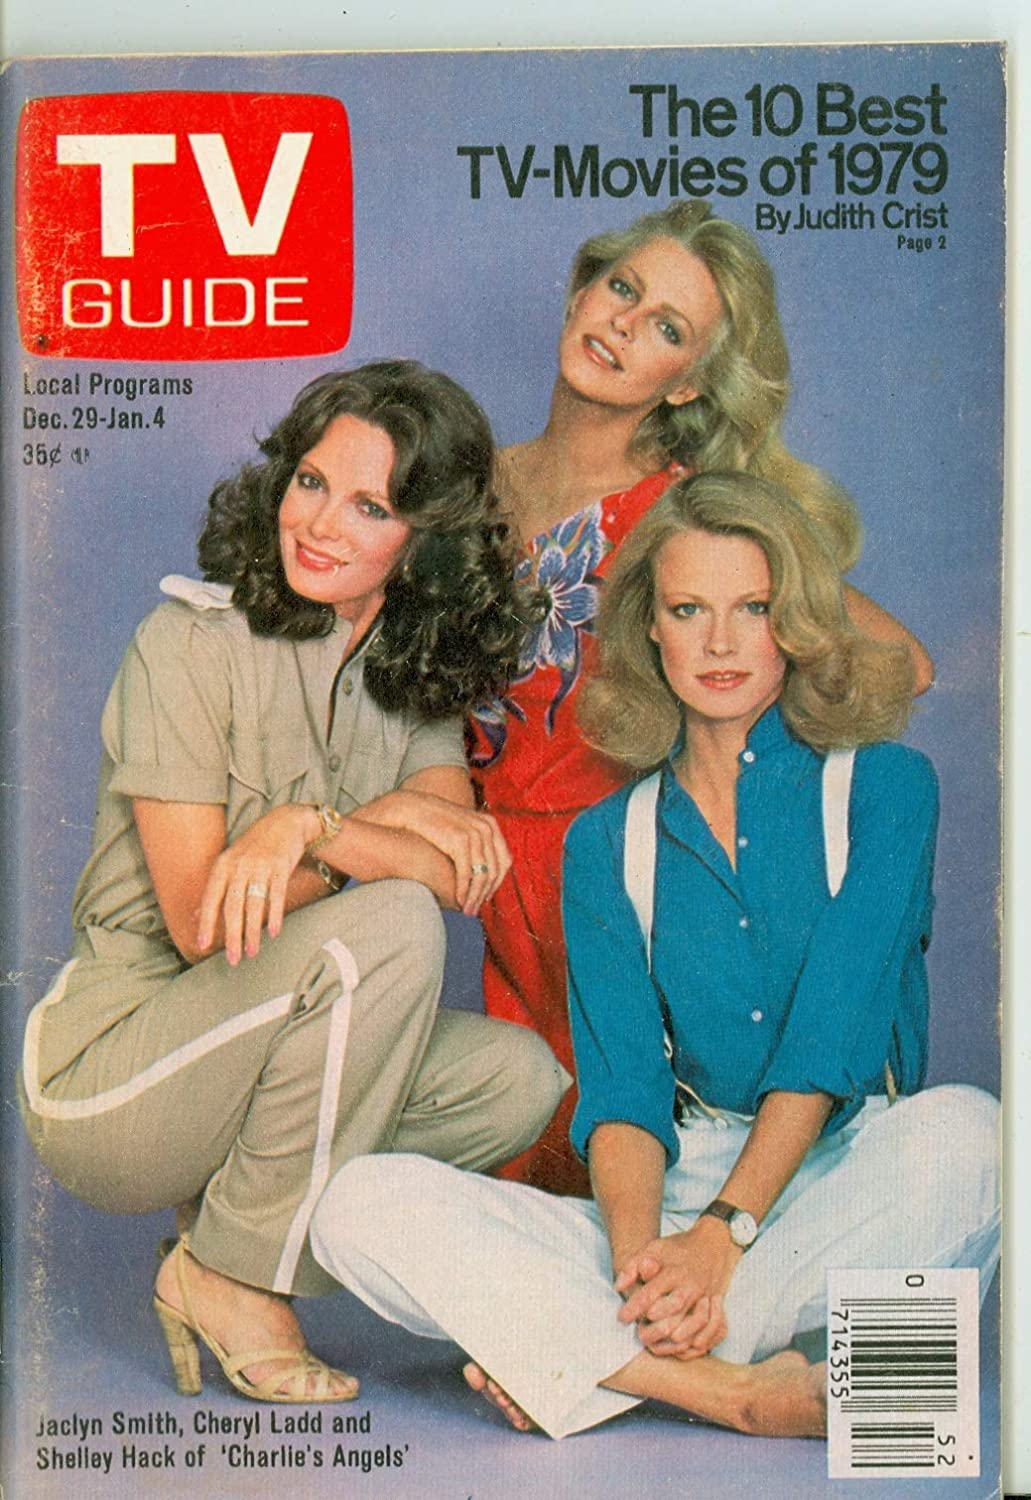 Shelley Hack United States Shelley Hack United States new pictures